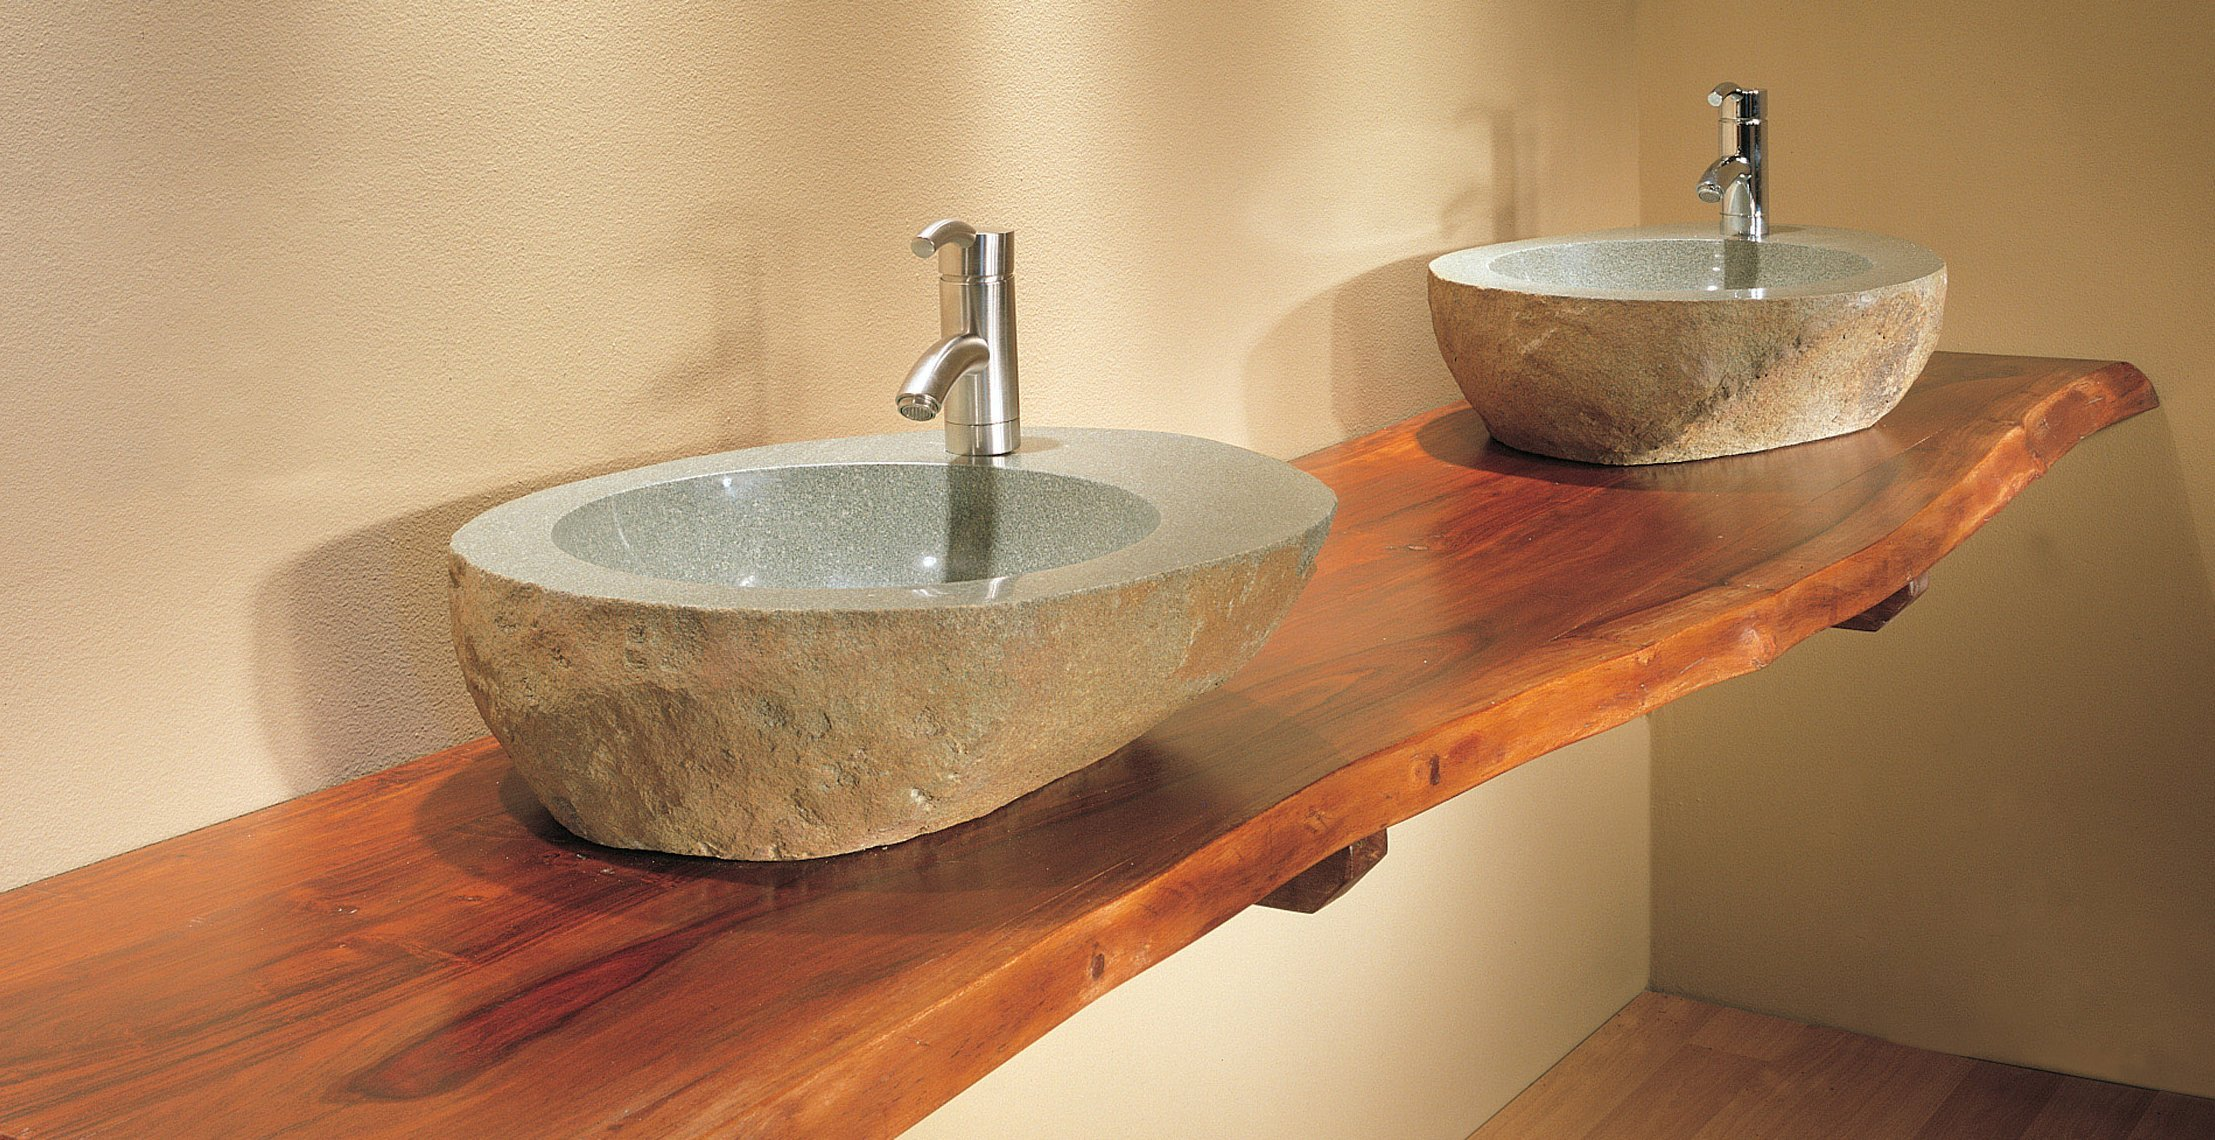 WOODSLABCStoneForestcrop DPDesign - Teak bathroom countertop